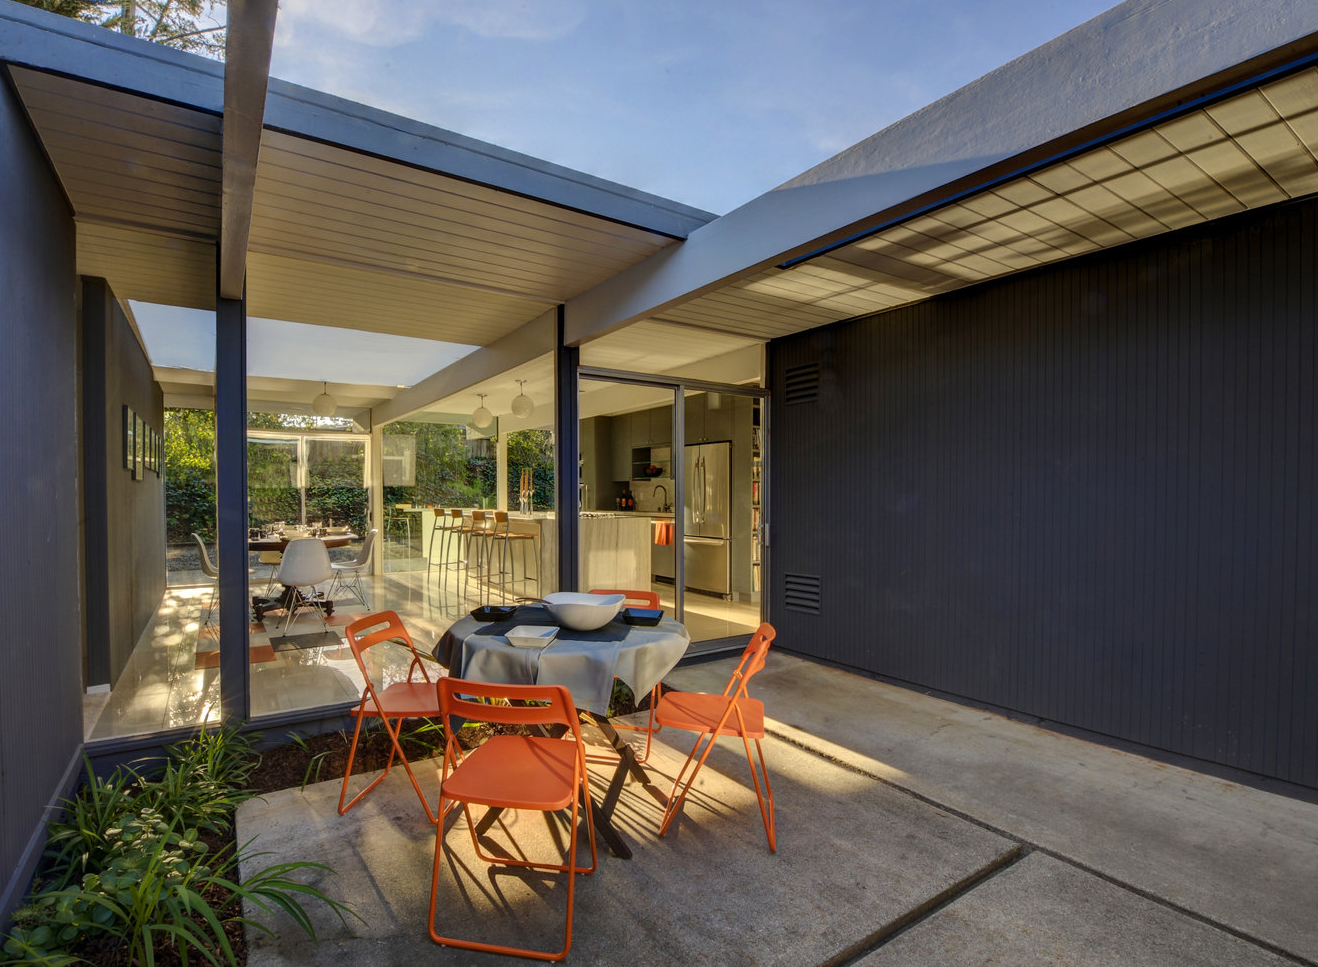 Highlands atrium Eichler, featured on the 2017 Eichler Home Tour